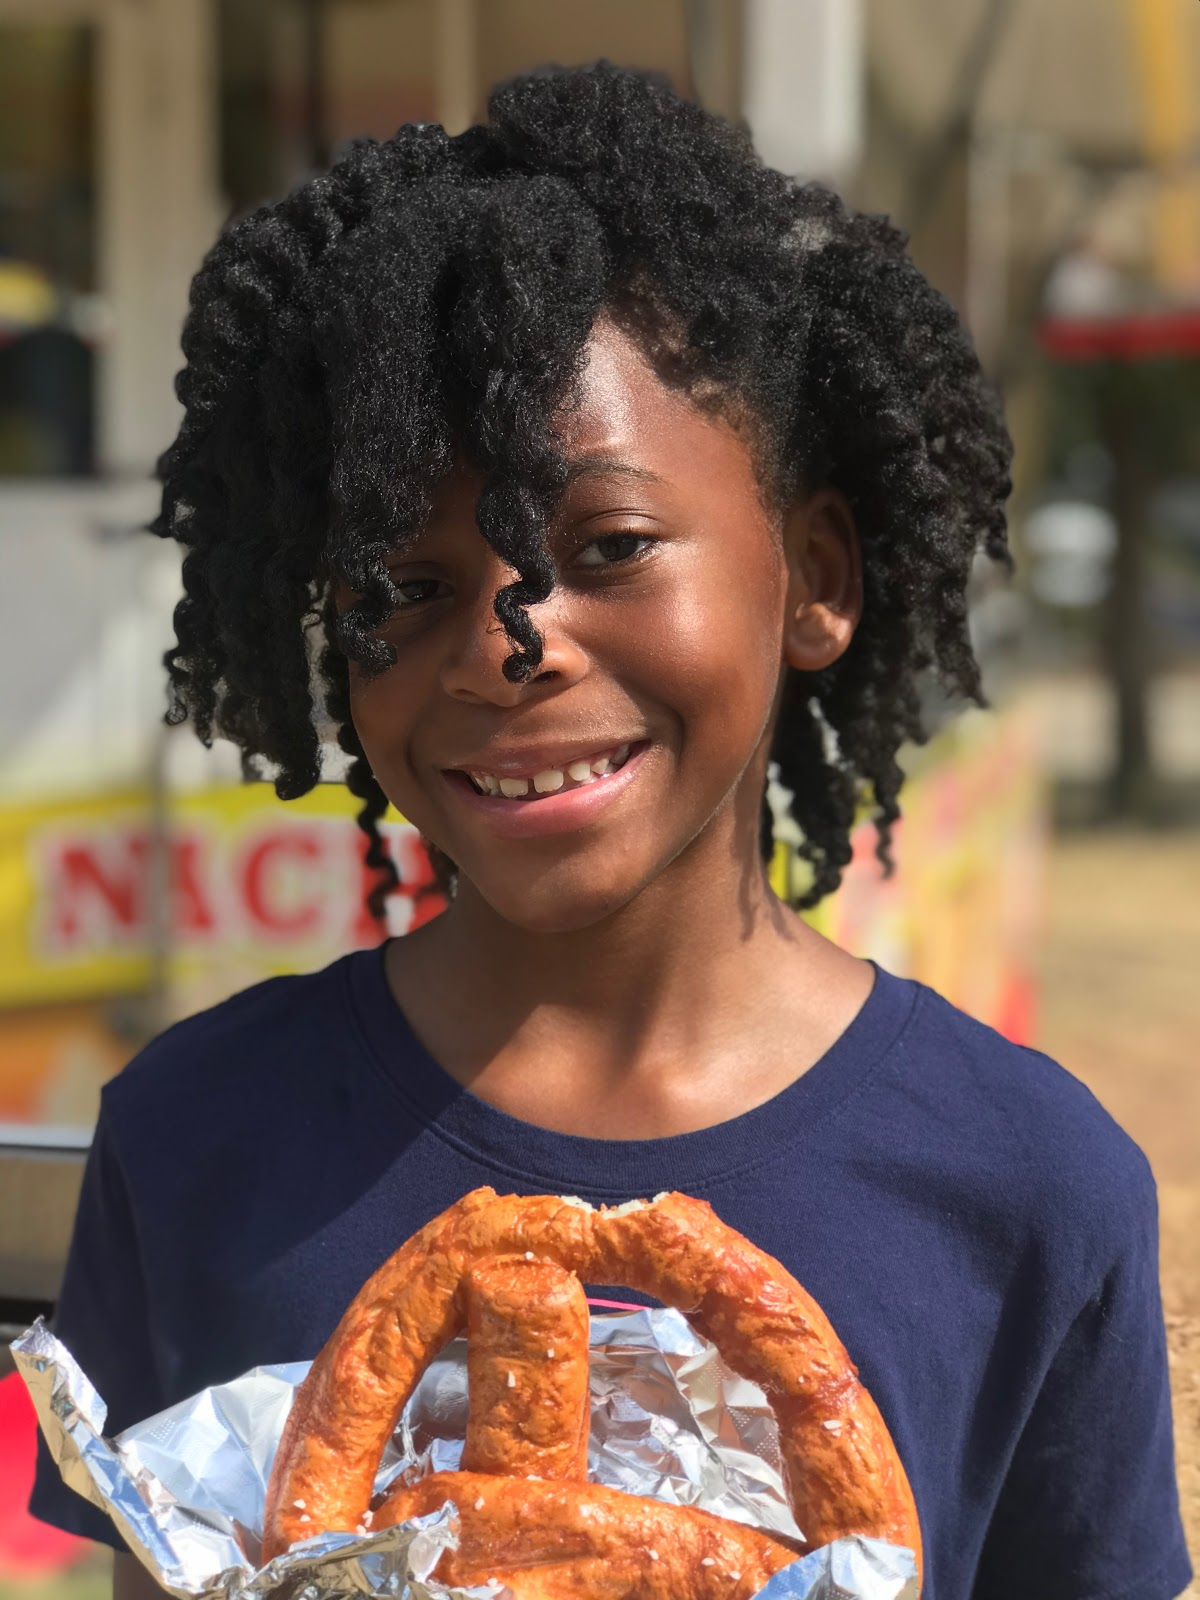 Image: Moriah Bell eating pretzel at carnival. Family Day Out: Soaking Up The Sun, Eating Junk Food And Capping Off Summer's End!